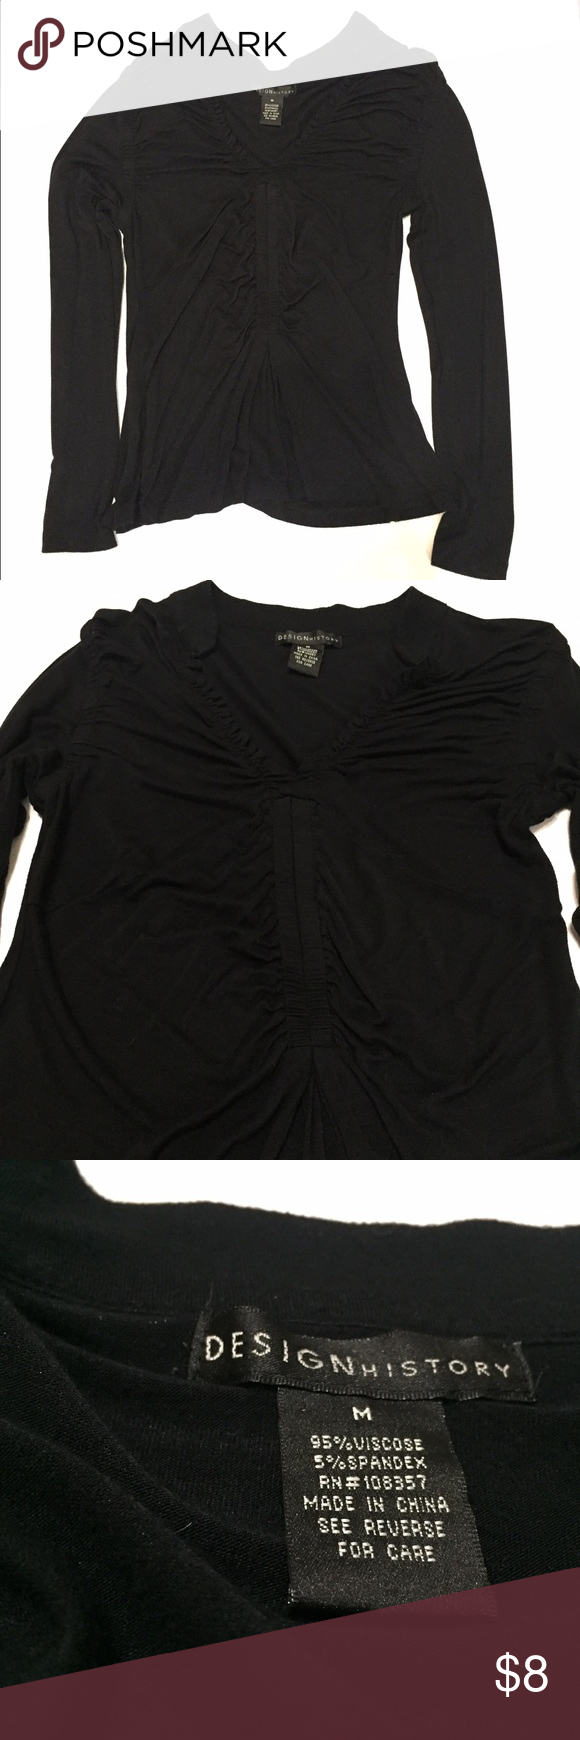 Black Long Sleeve Top V neck shirt with cute detailing. In good condition. Any questions please ask. Tops